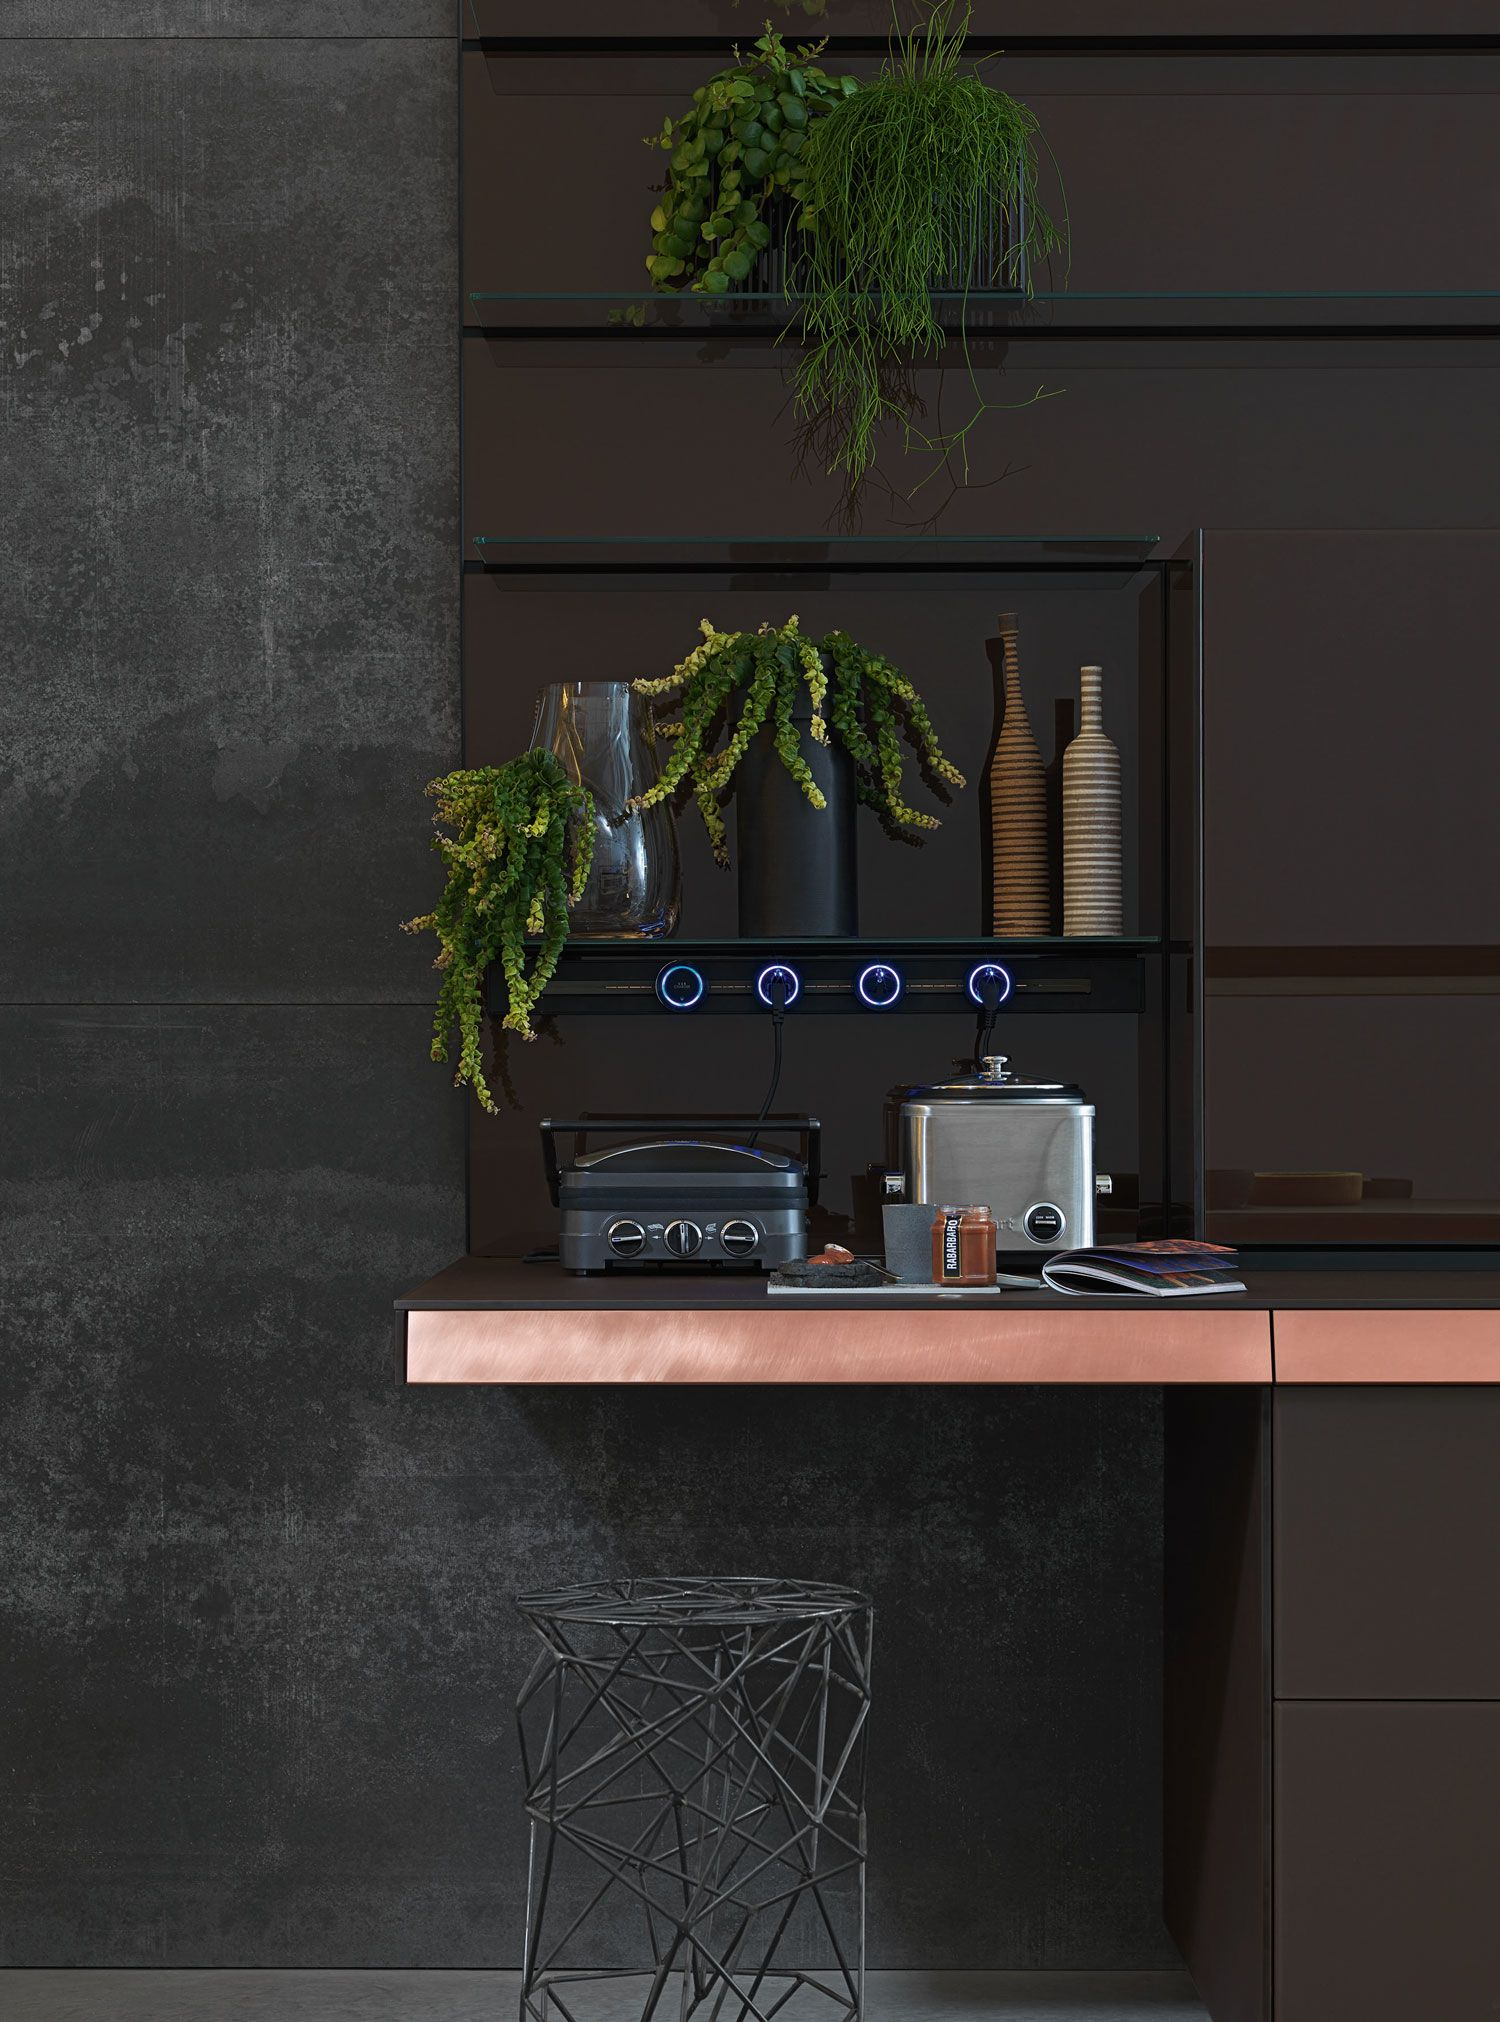 Appliances as Art and Other Kitchen Trends from Eurocucina